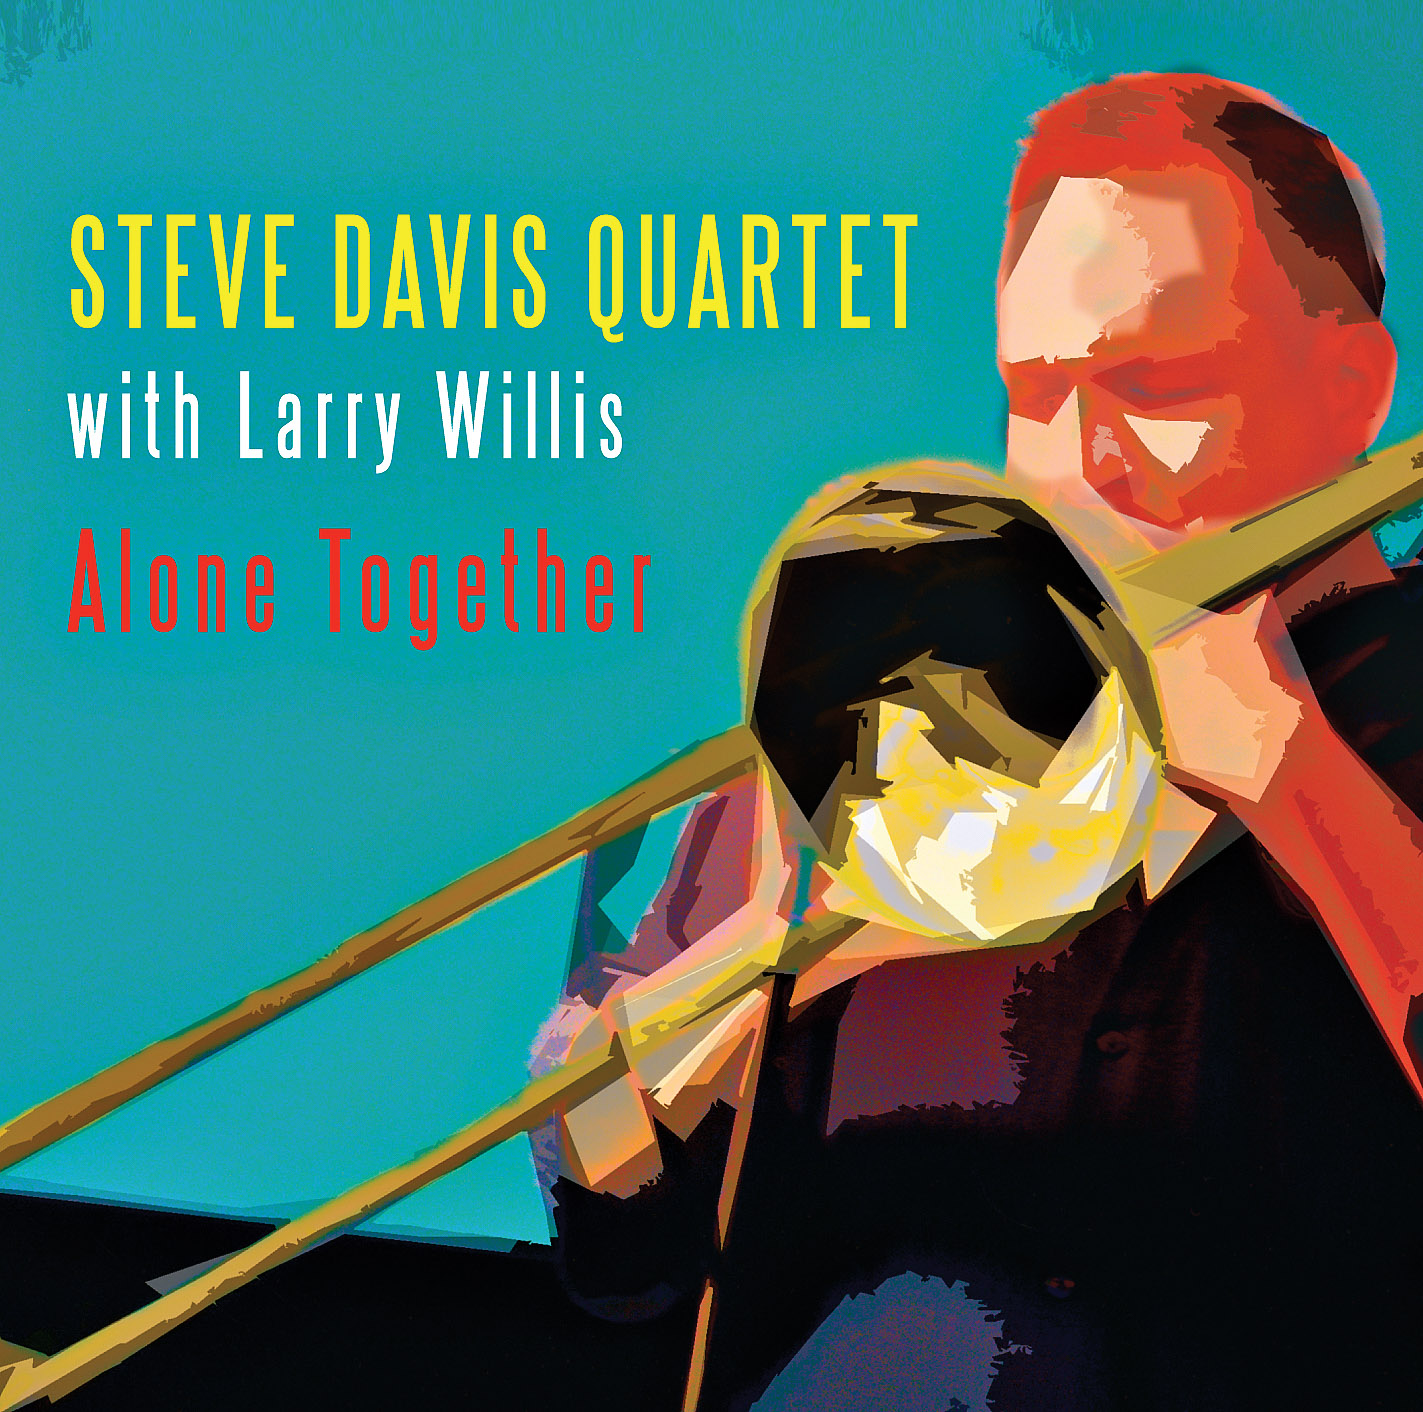 Steve Davis Quartet with Larry Willis: Alone Together